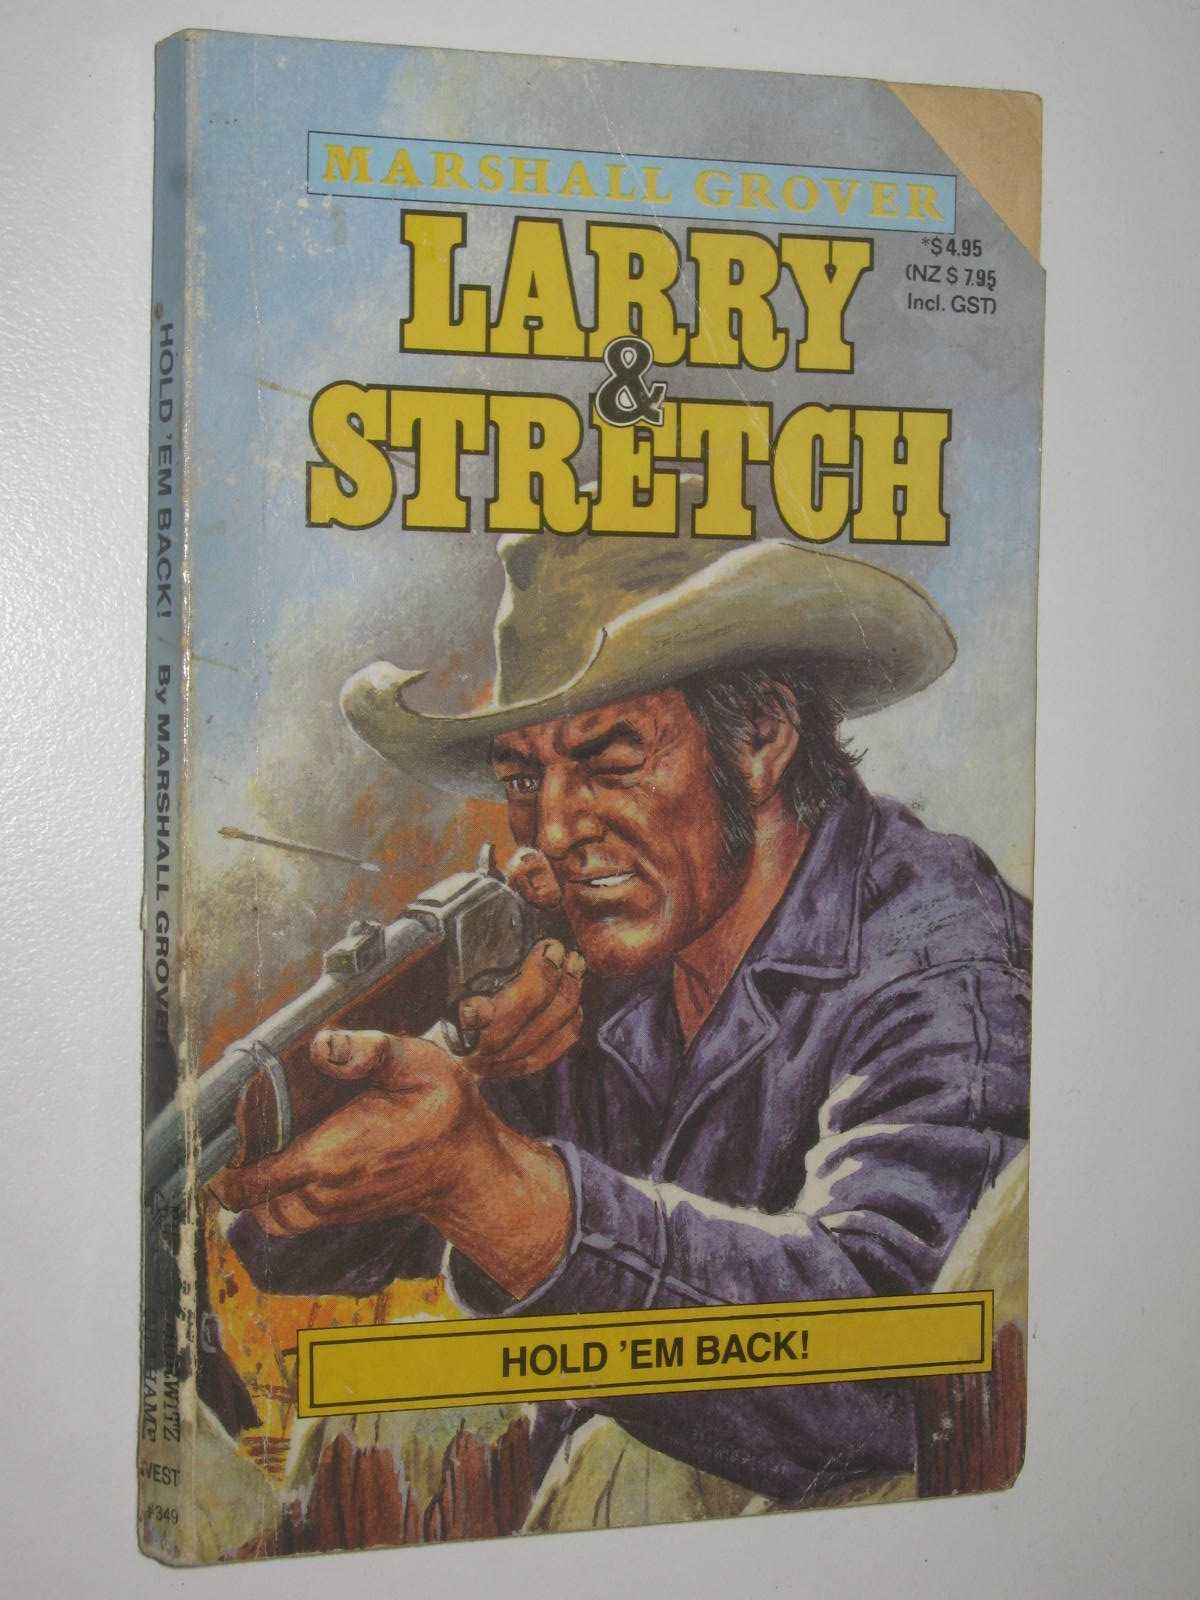 Image for Hold 'em Back - Larry and Stretch Series #349